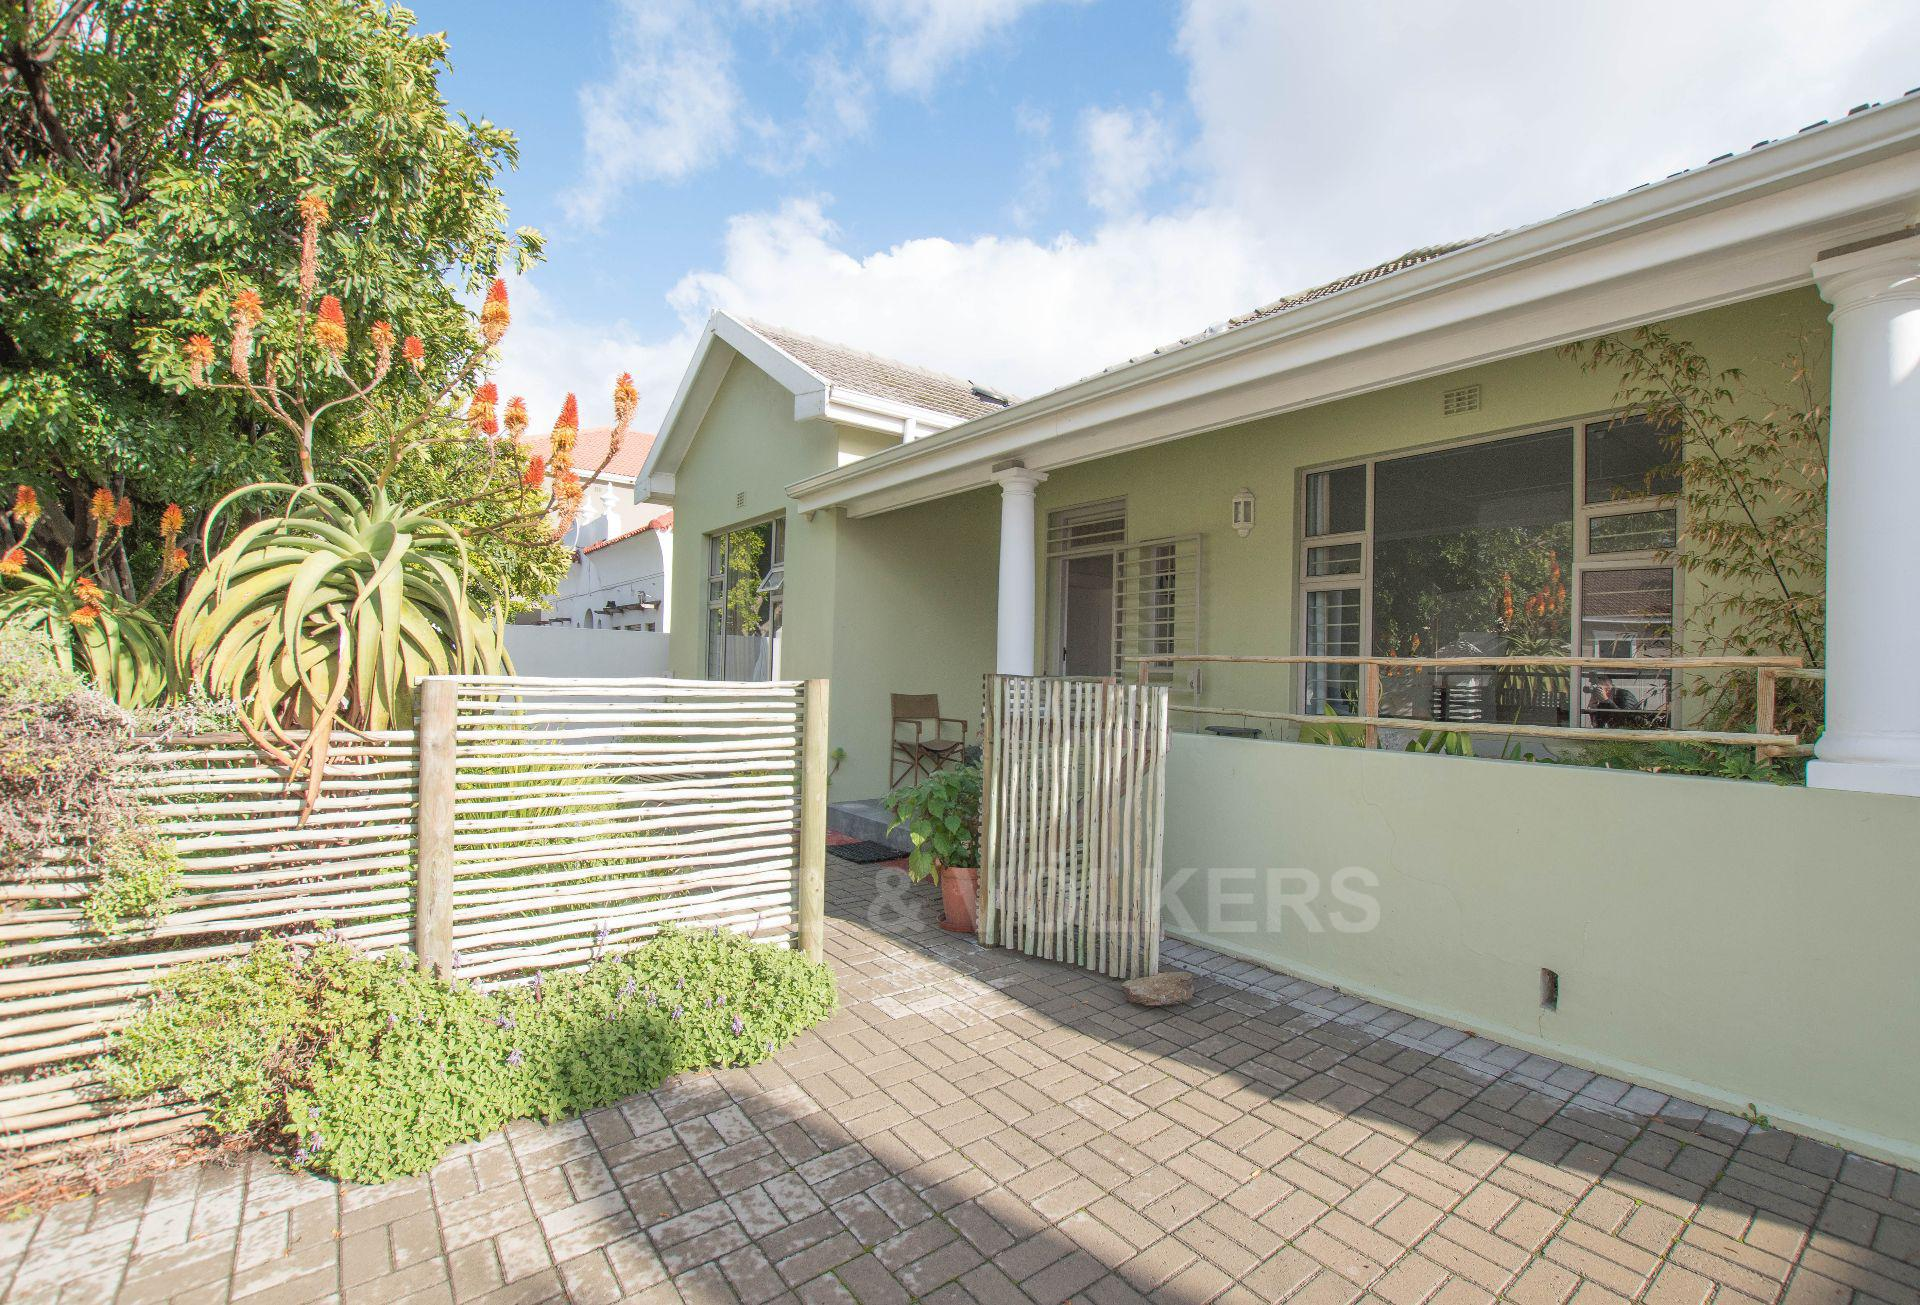 Cape Town, Muizenberg Property - Houses For Sale Muizenberg, Muizenberg,